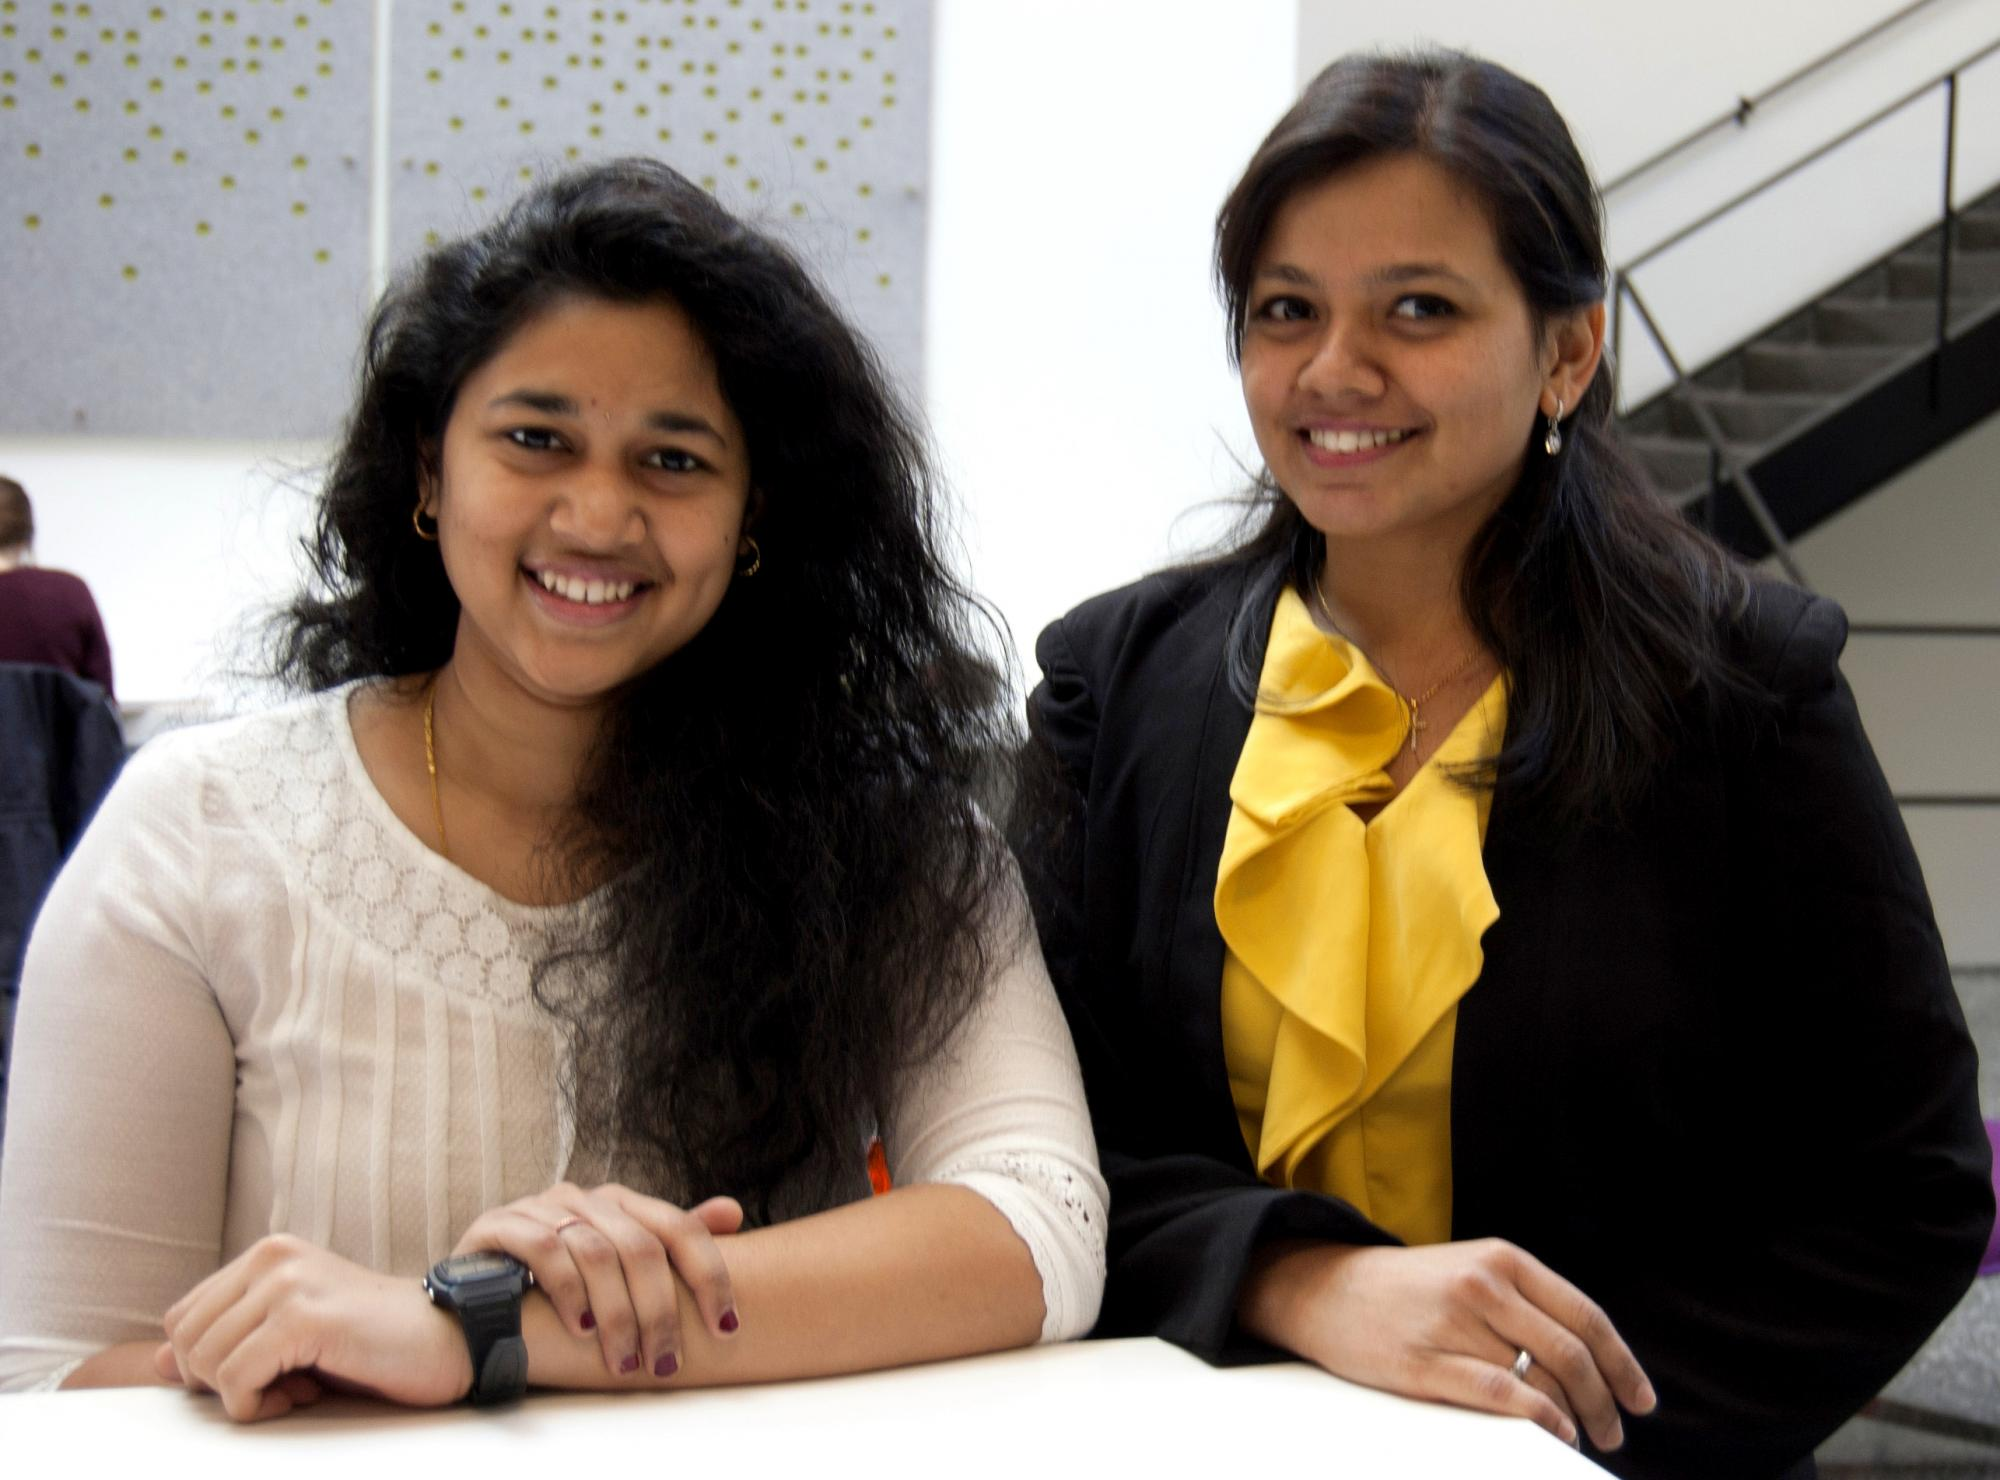 Pratyusha Mudrakarta (on the left) and Elizabeth Rebello (on the right)